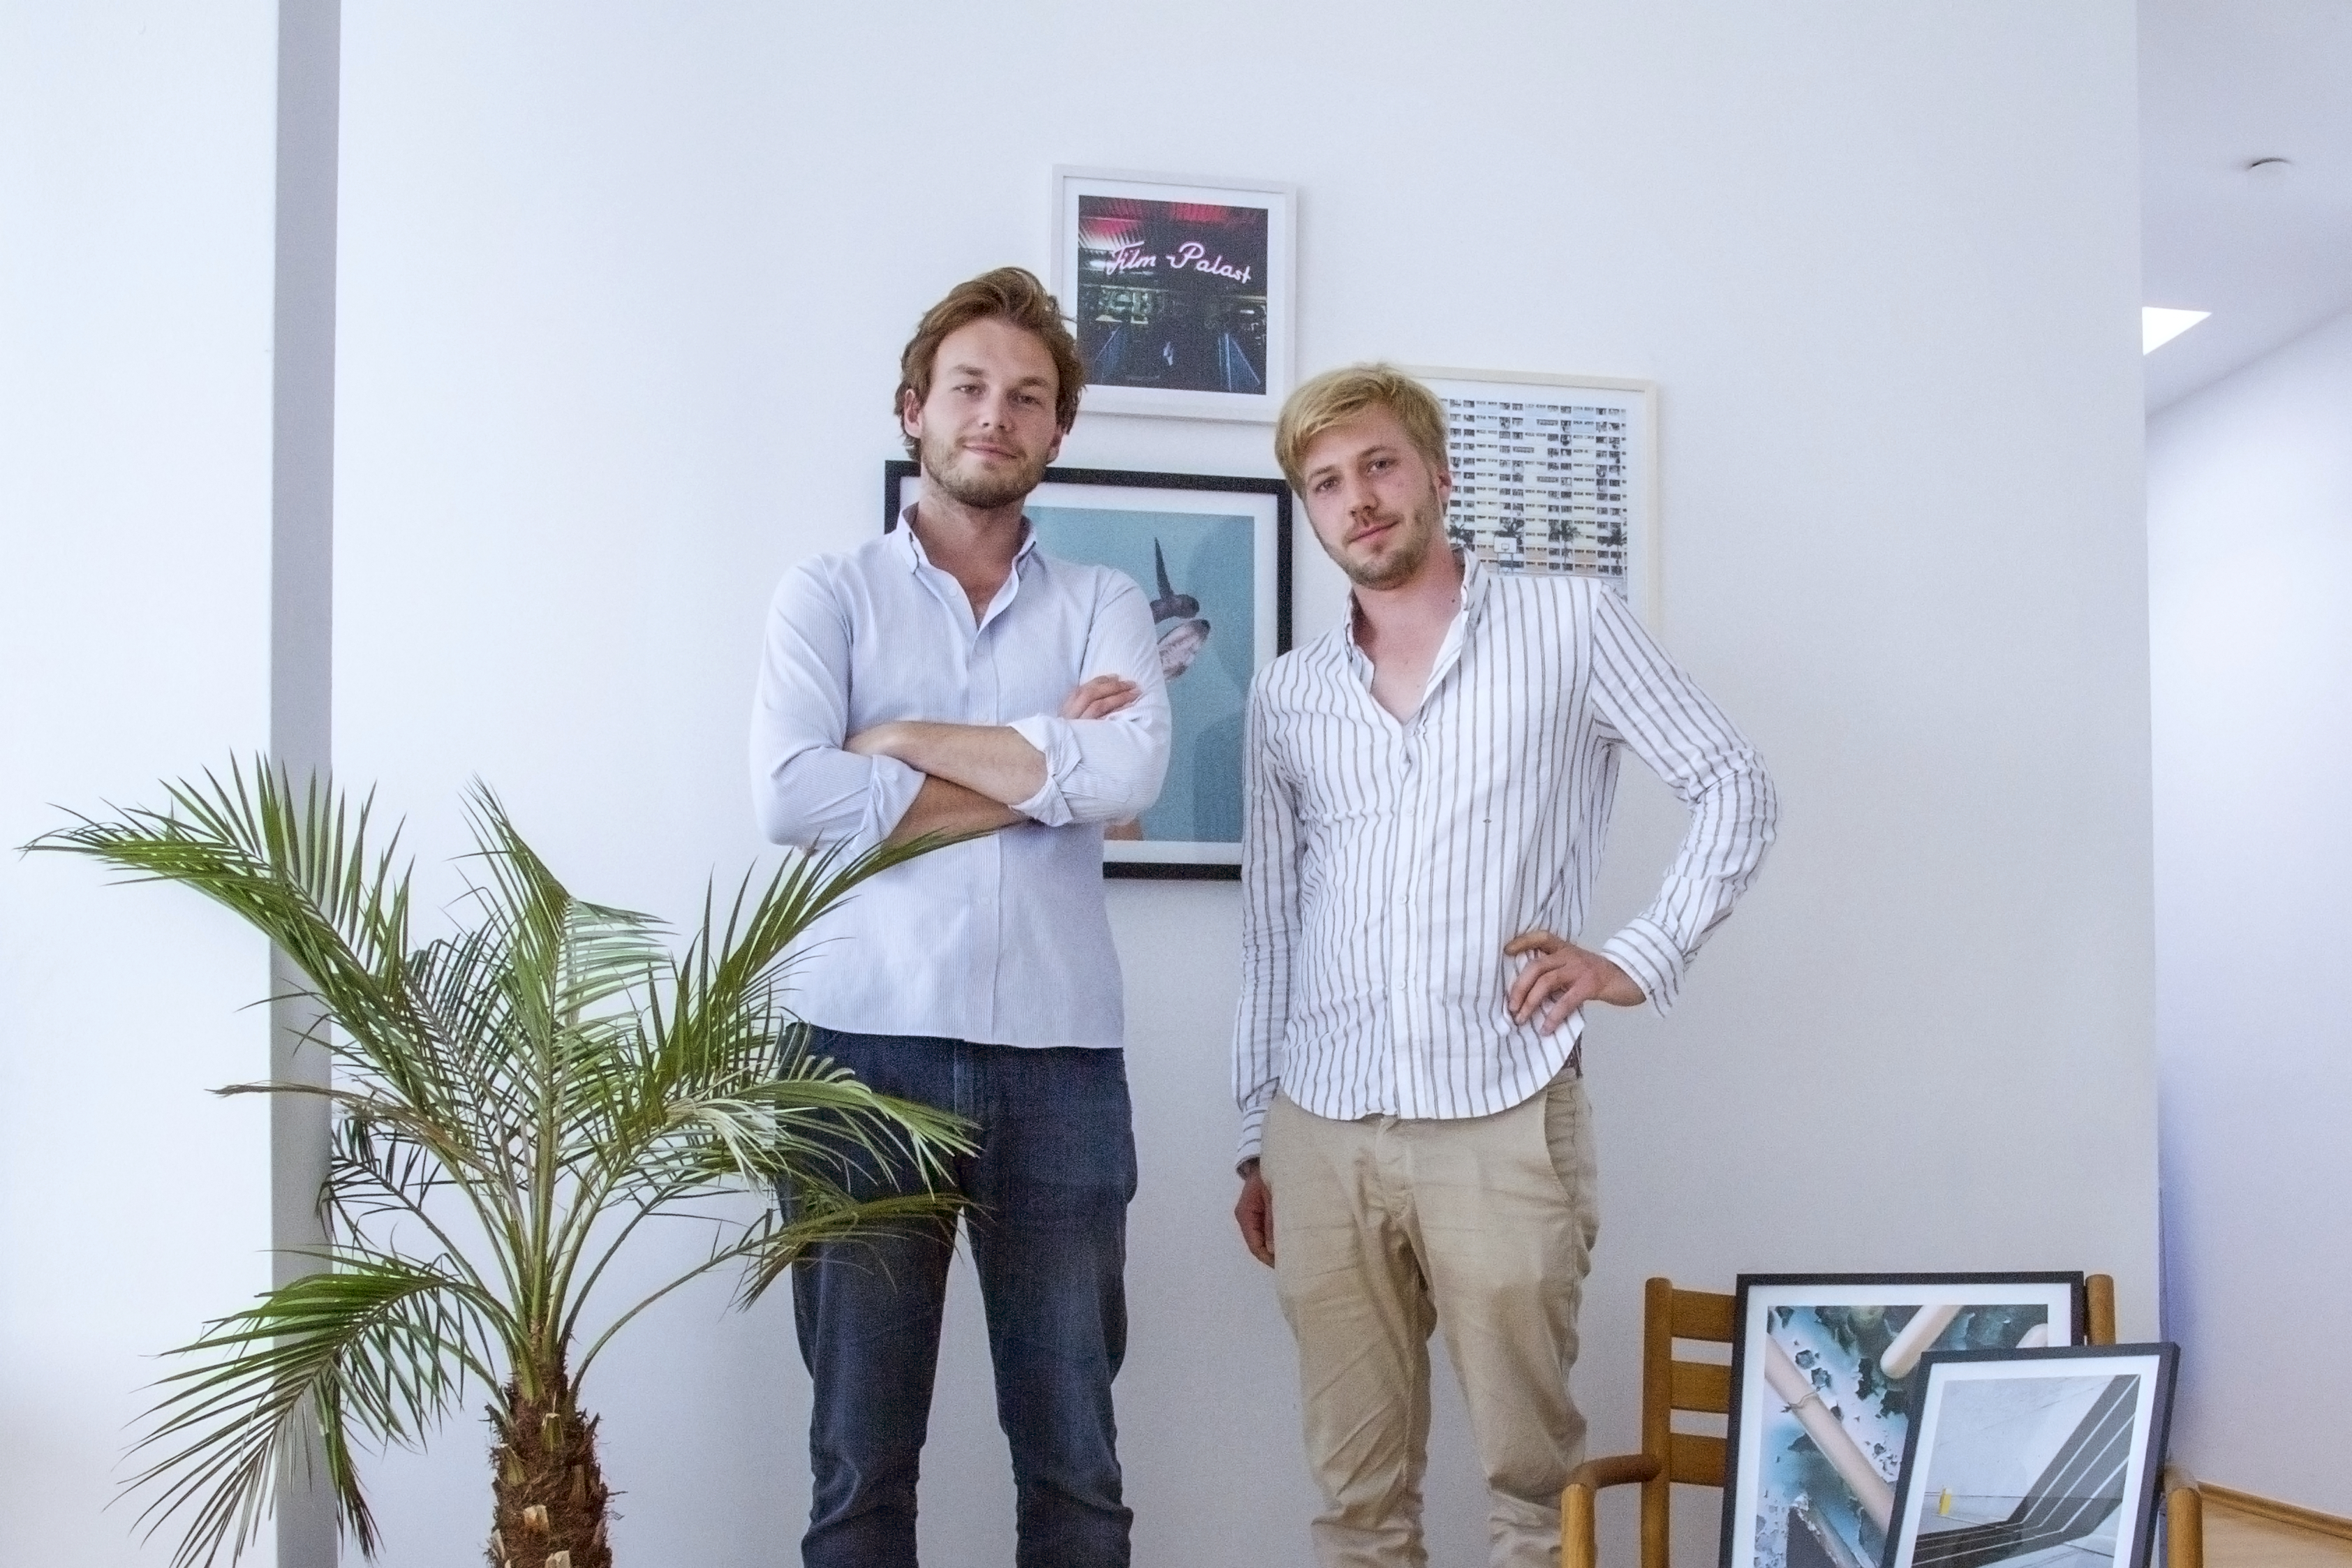 Post Collective Ferdi Prinz